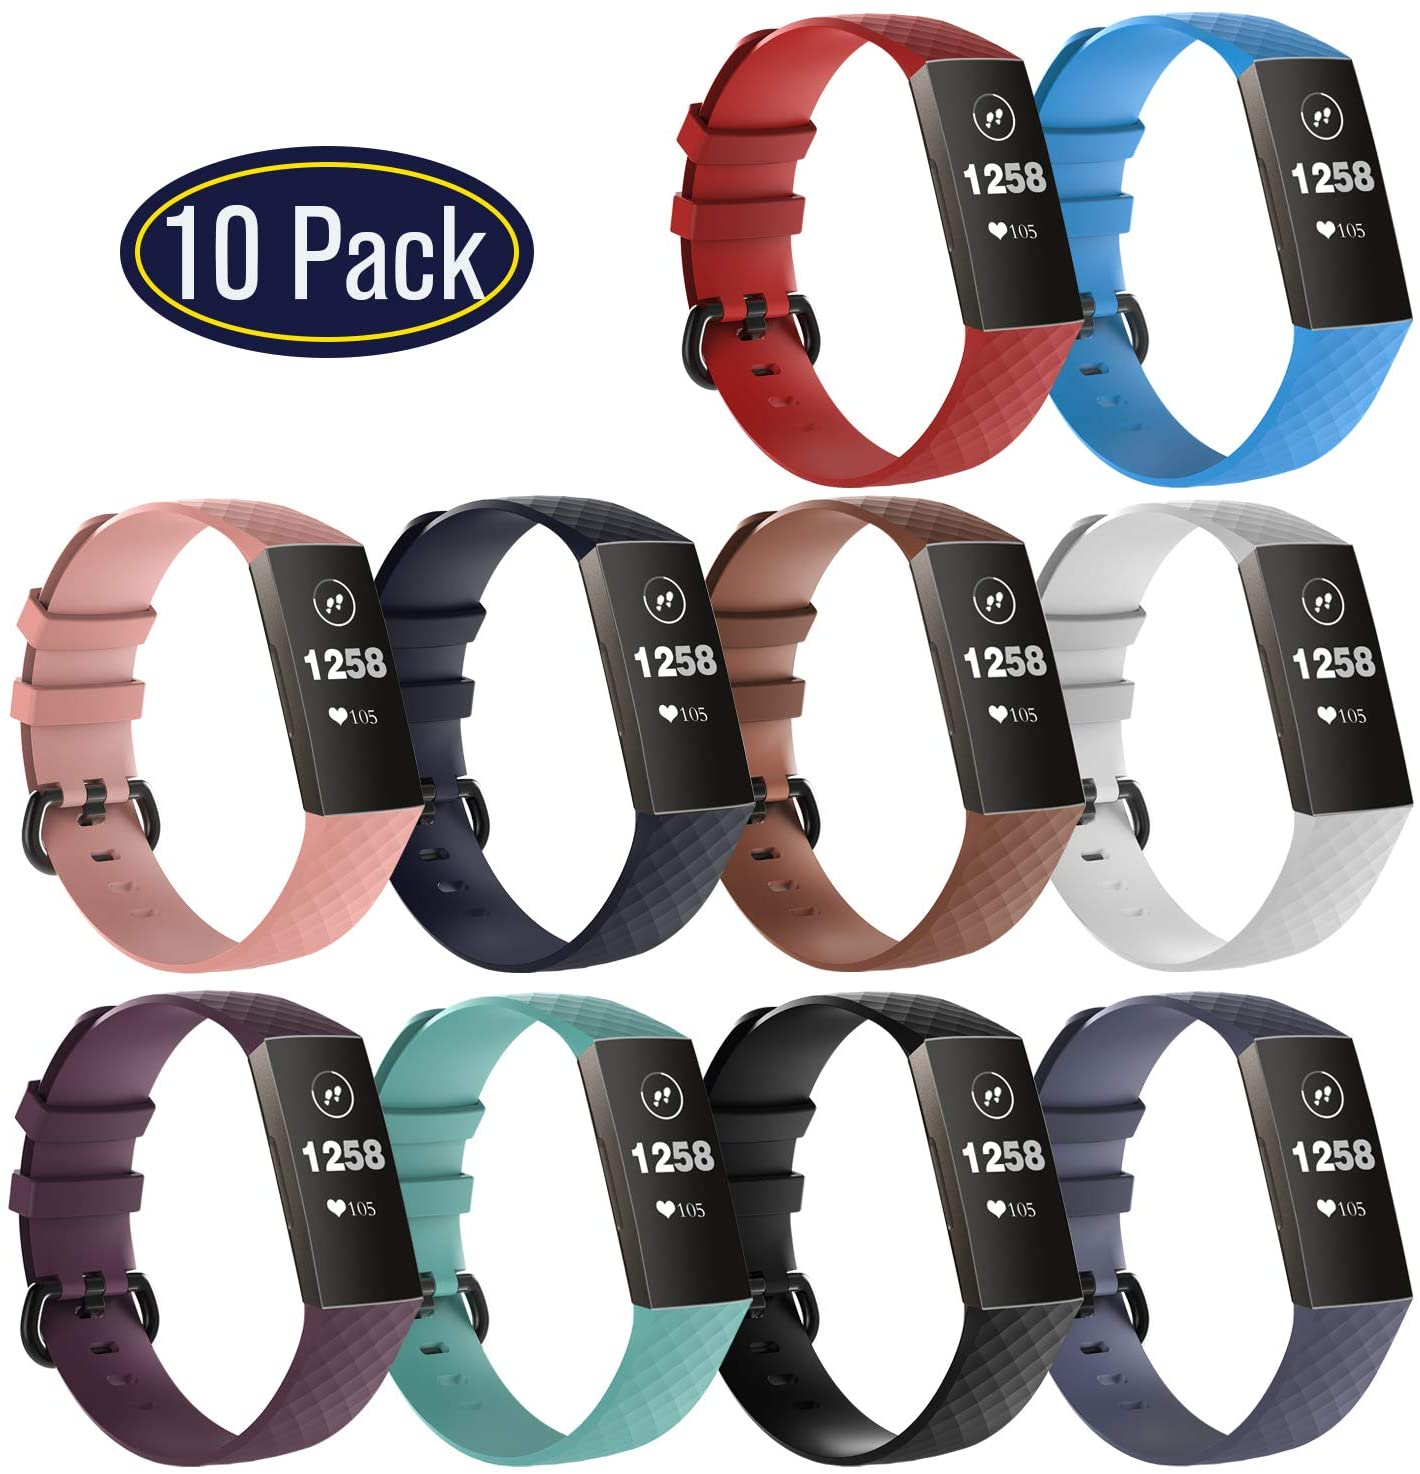 KingAcc 10 Pack Compatible with Fitbit Charge 3 Bands and Charge 4, Adjustable Replacement Soft Silicone Wristbands for Fitbit Charge 3 & Fitbit Charge 4 for Women Men Small Large…